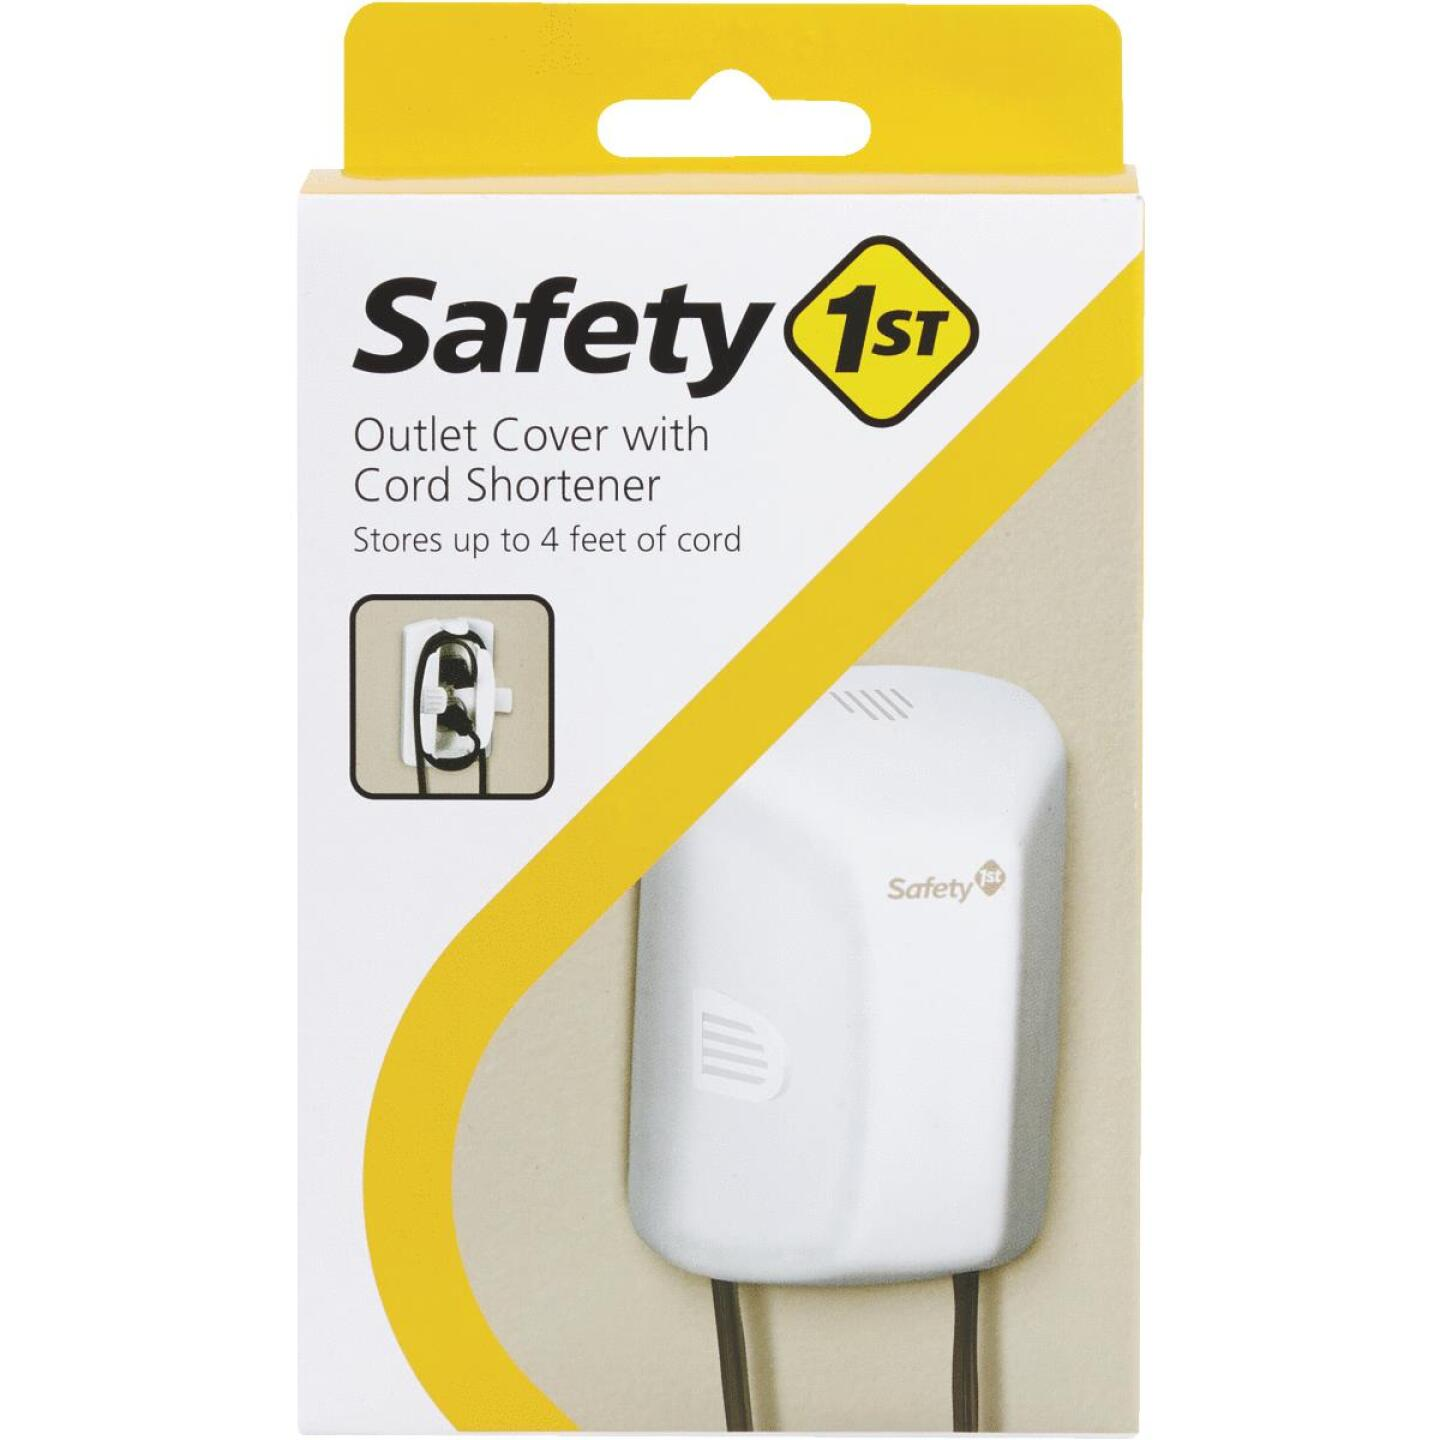 Safety 1st White Plastic Outlet Cover w/Cord Shortener Image 2